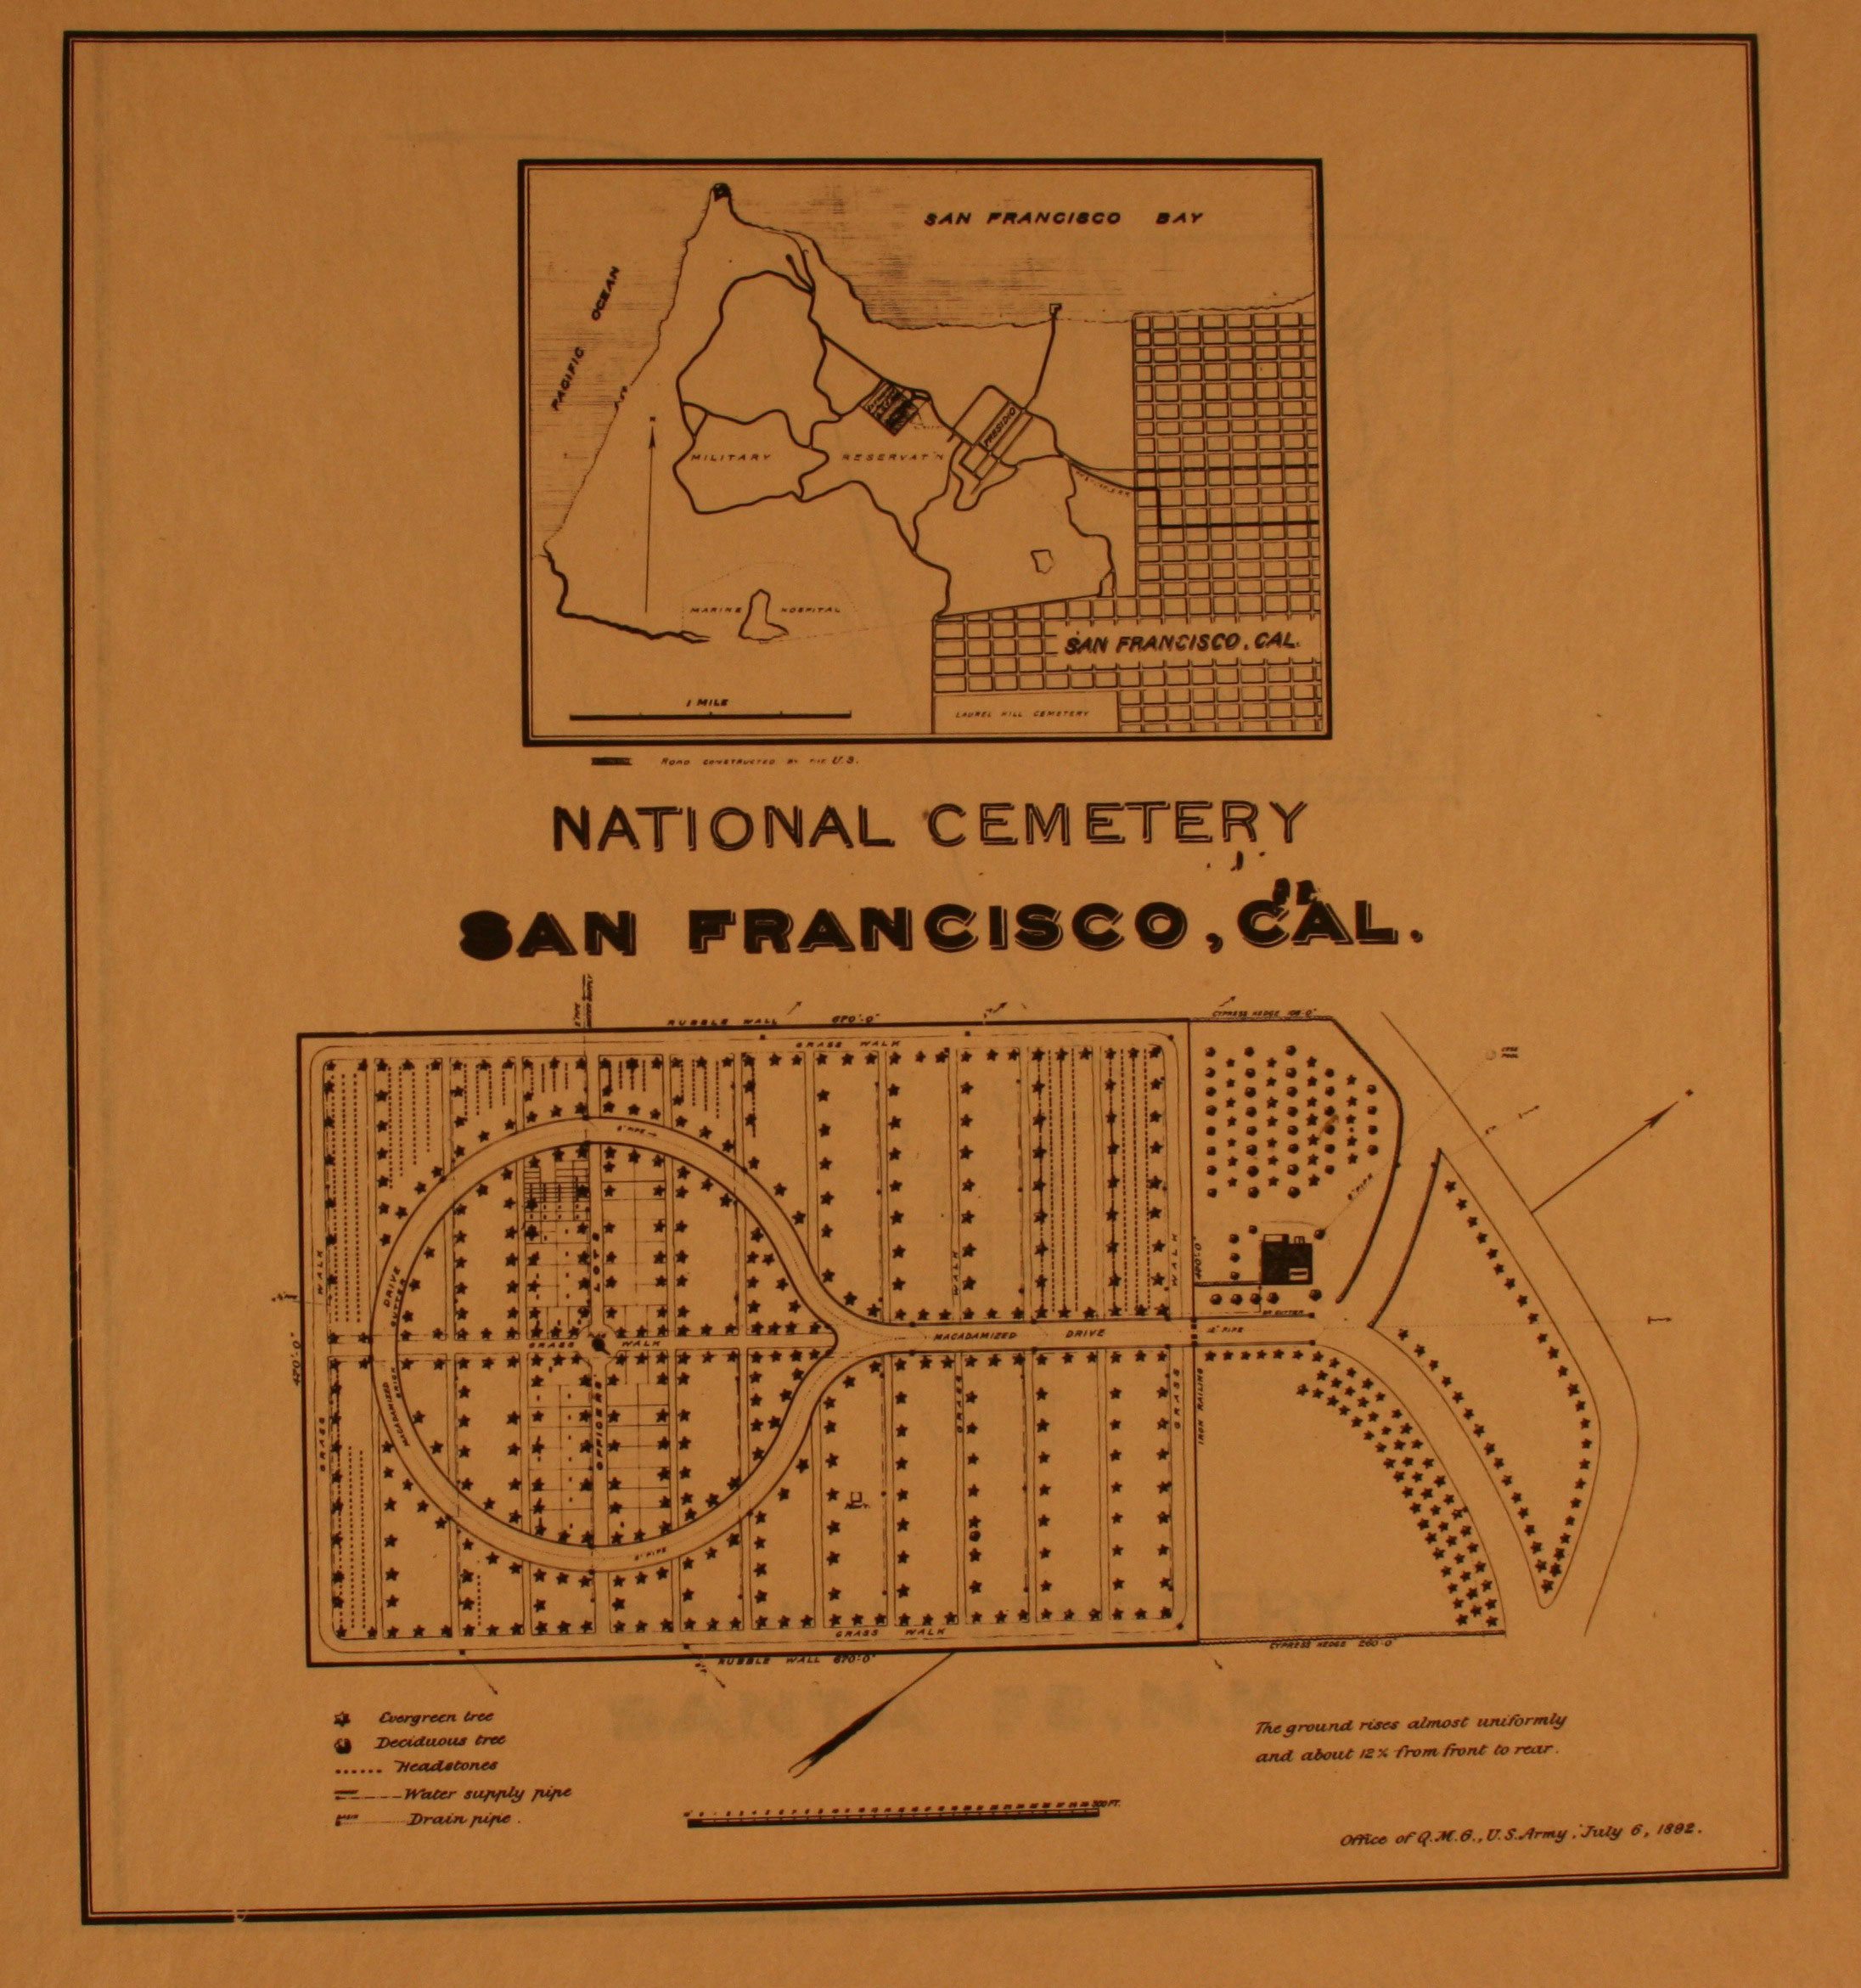 1893 site plan of san francisco national cemetery courtesy of the national archives and records administration click on image to enlarge